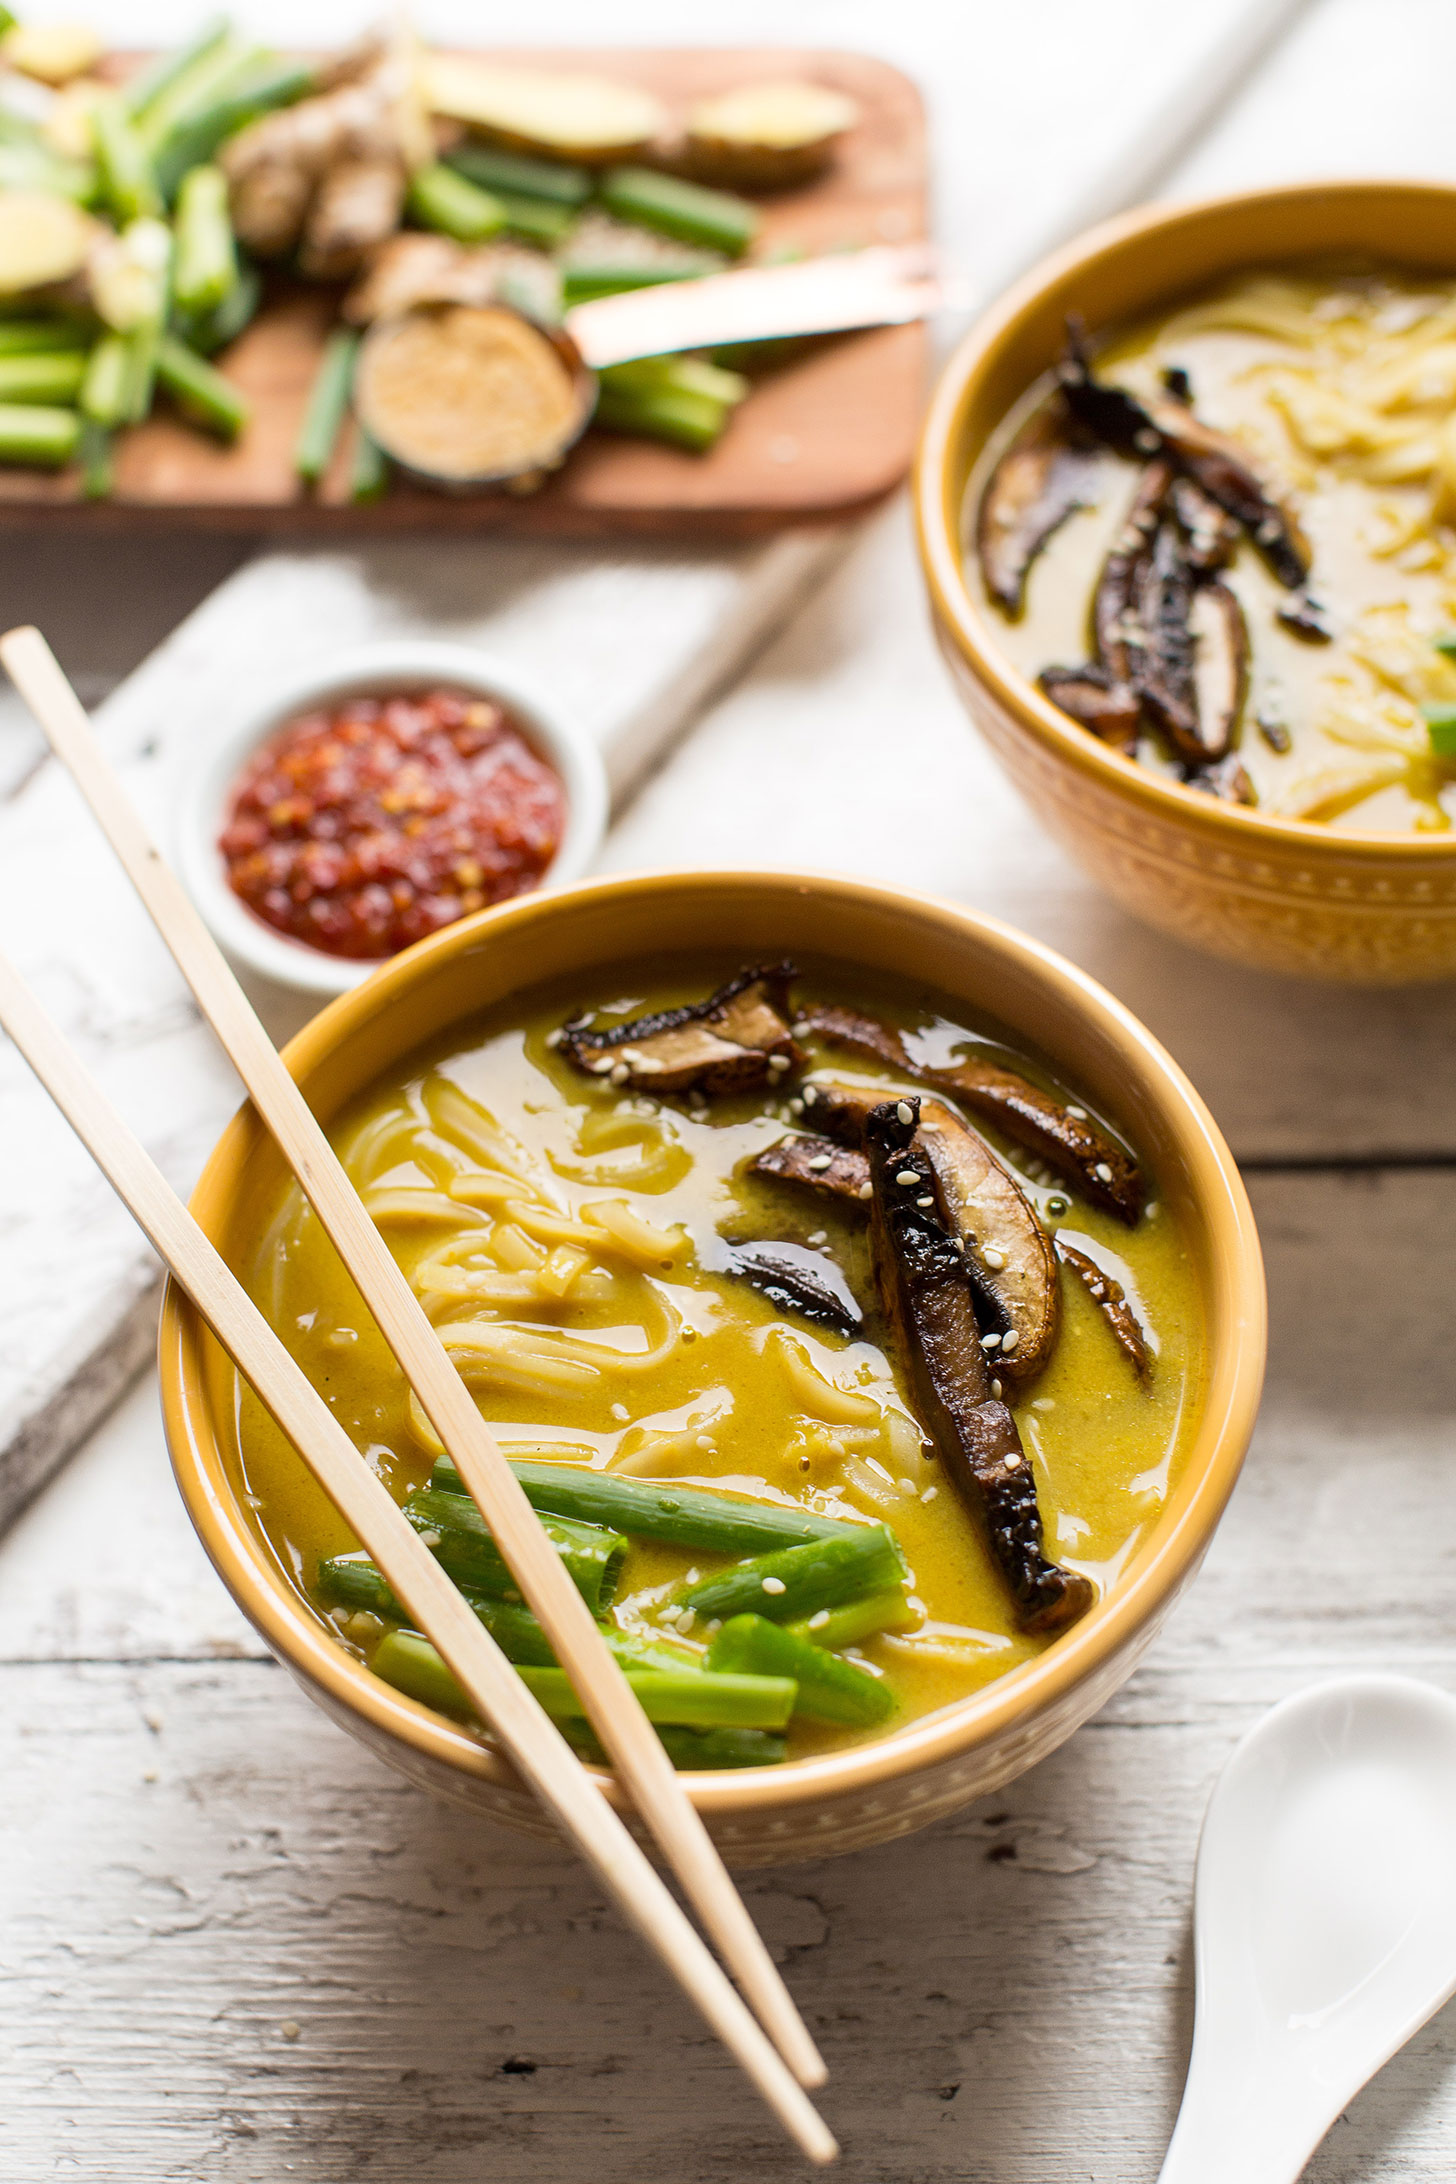 Bowl of gluten-free vegan Coconut Curry Ramen for a fast and flavorful gluten-free plant-based meal